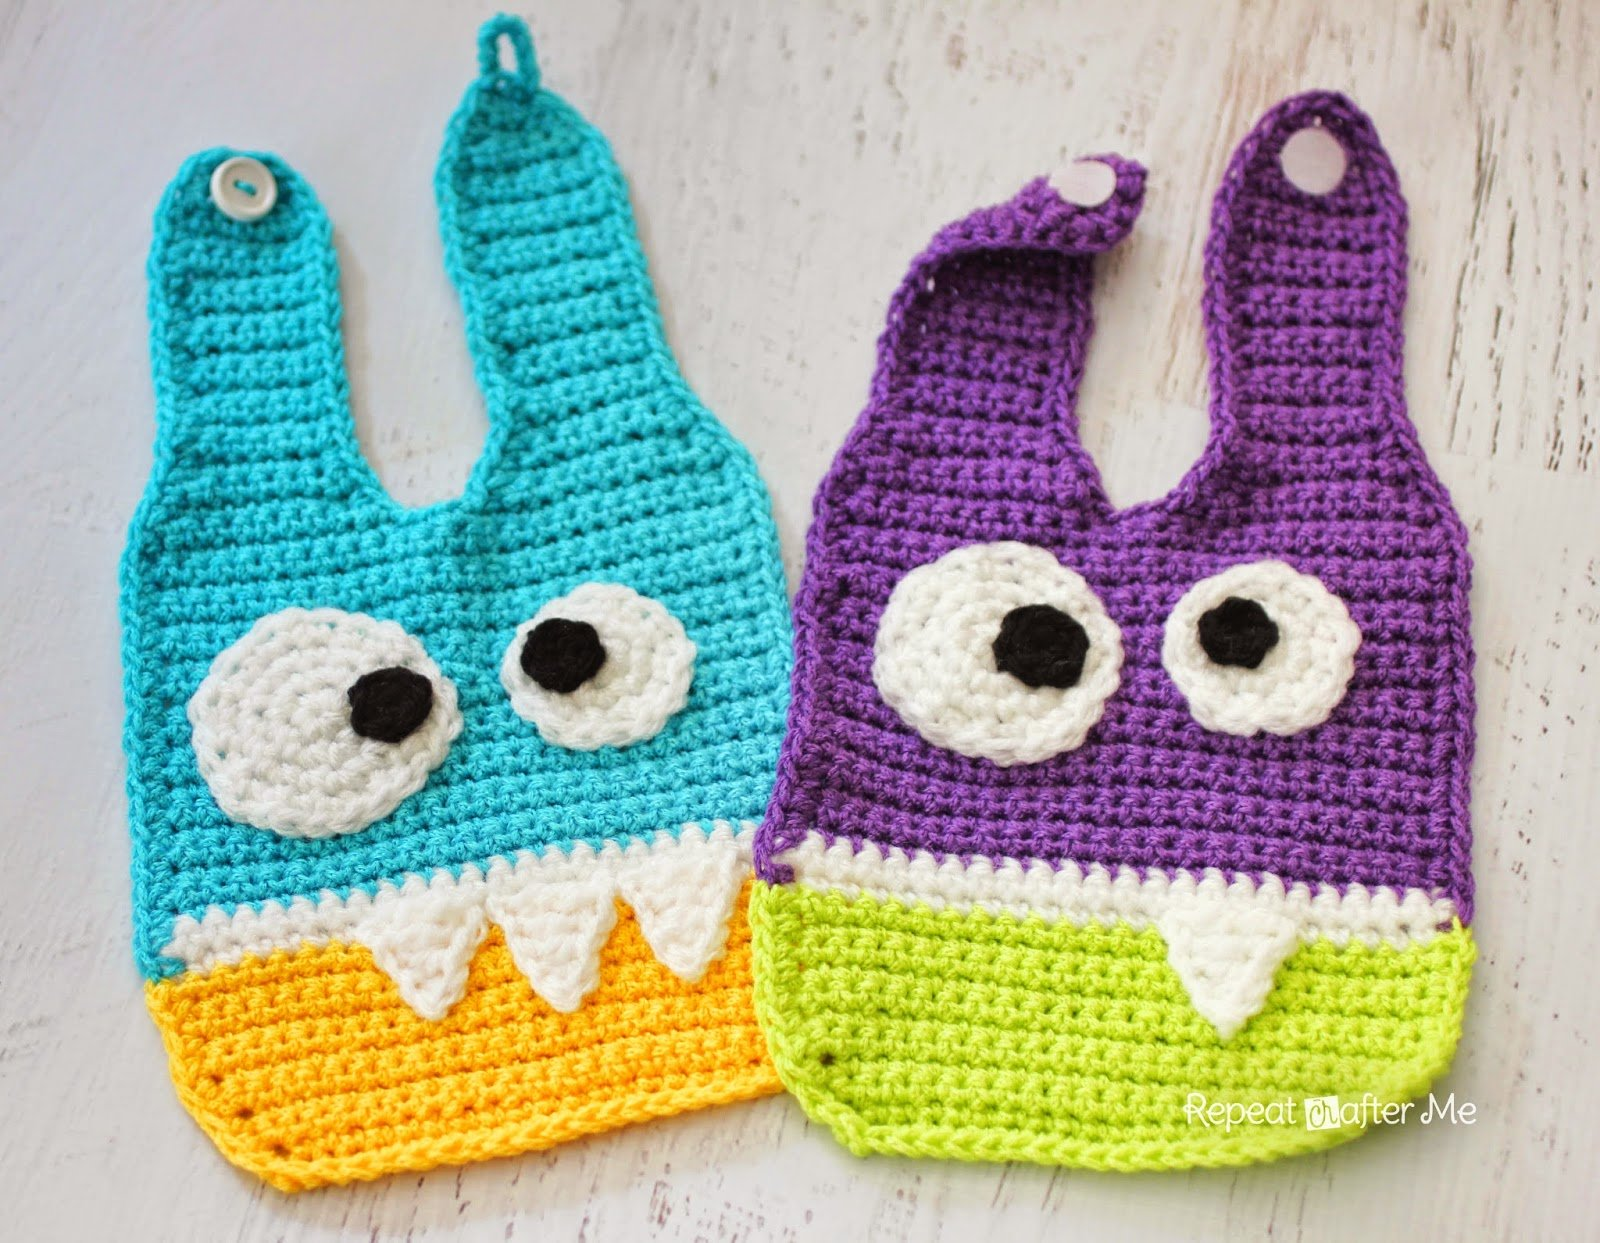 Crochet Monster Baby Bibs by Repeat Crafter Me